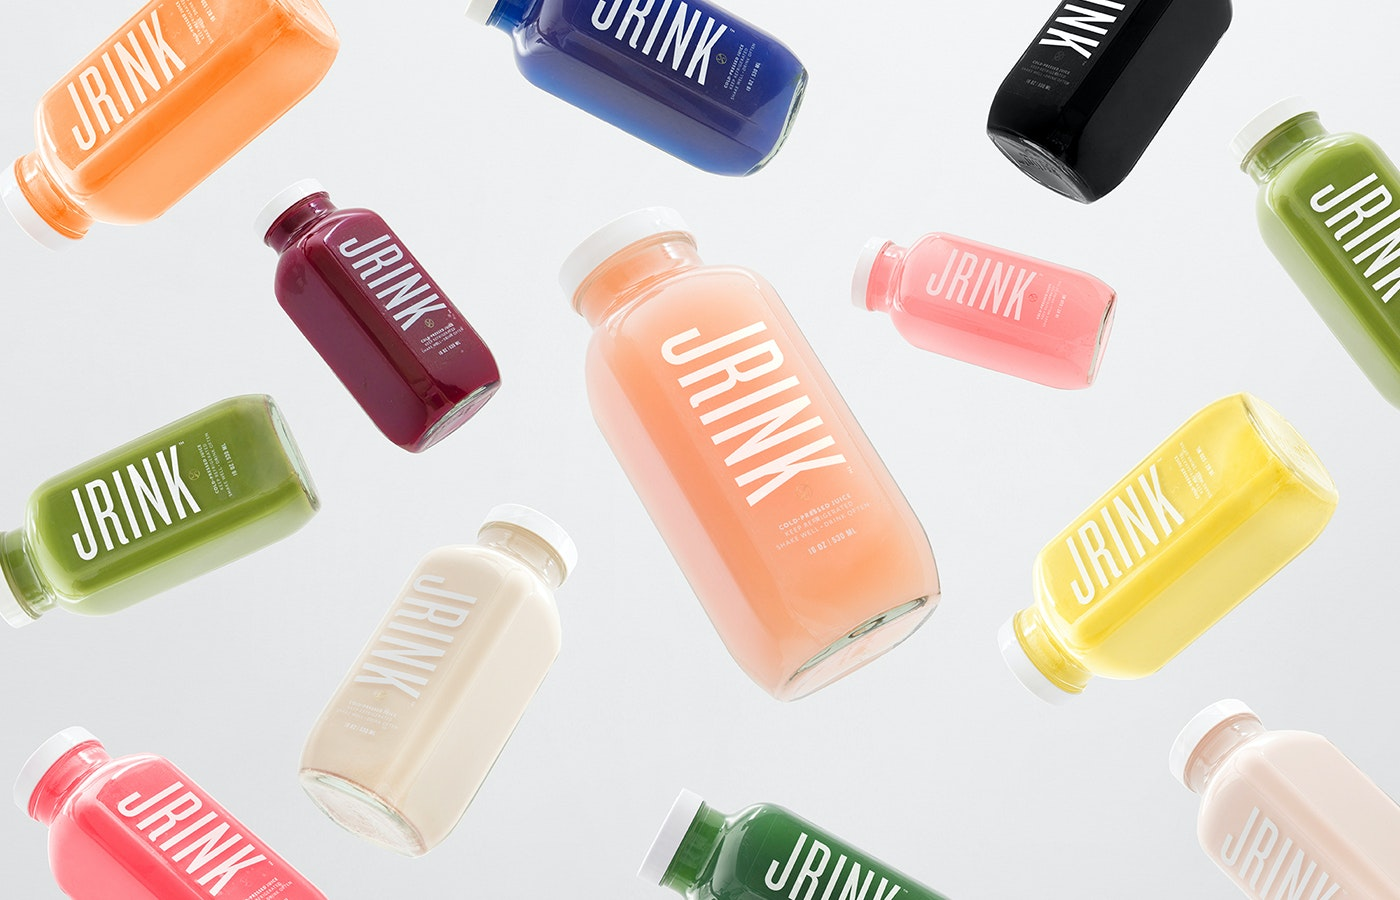 Jrink package design